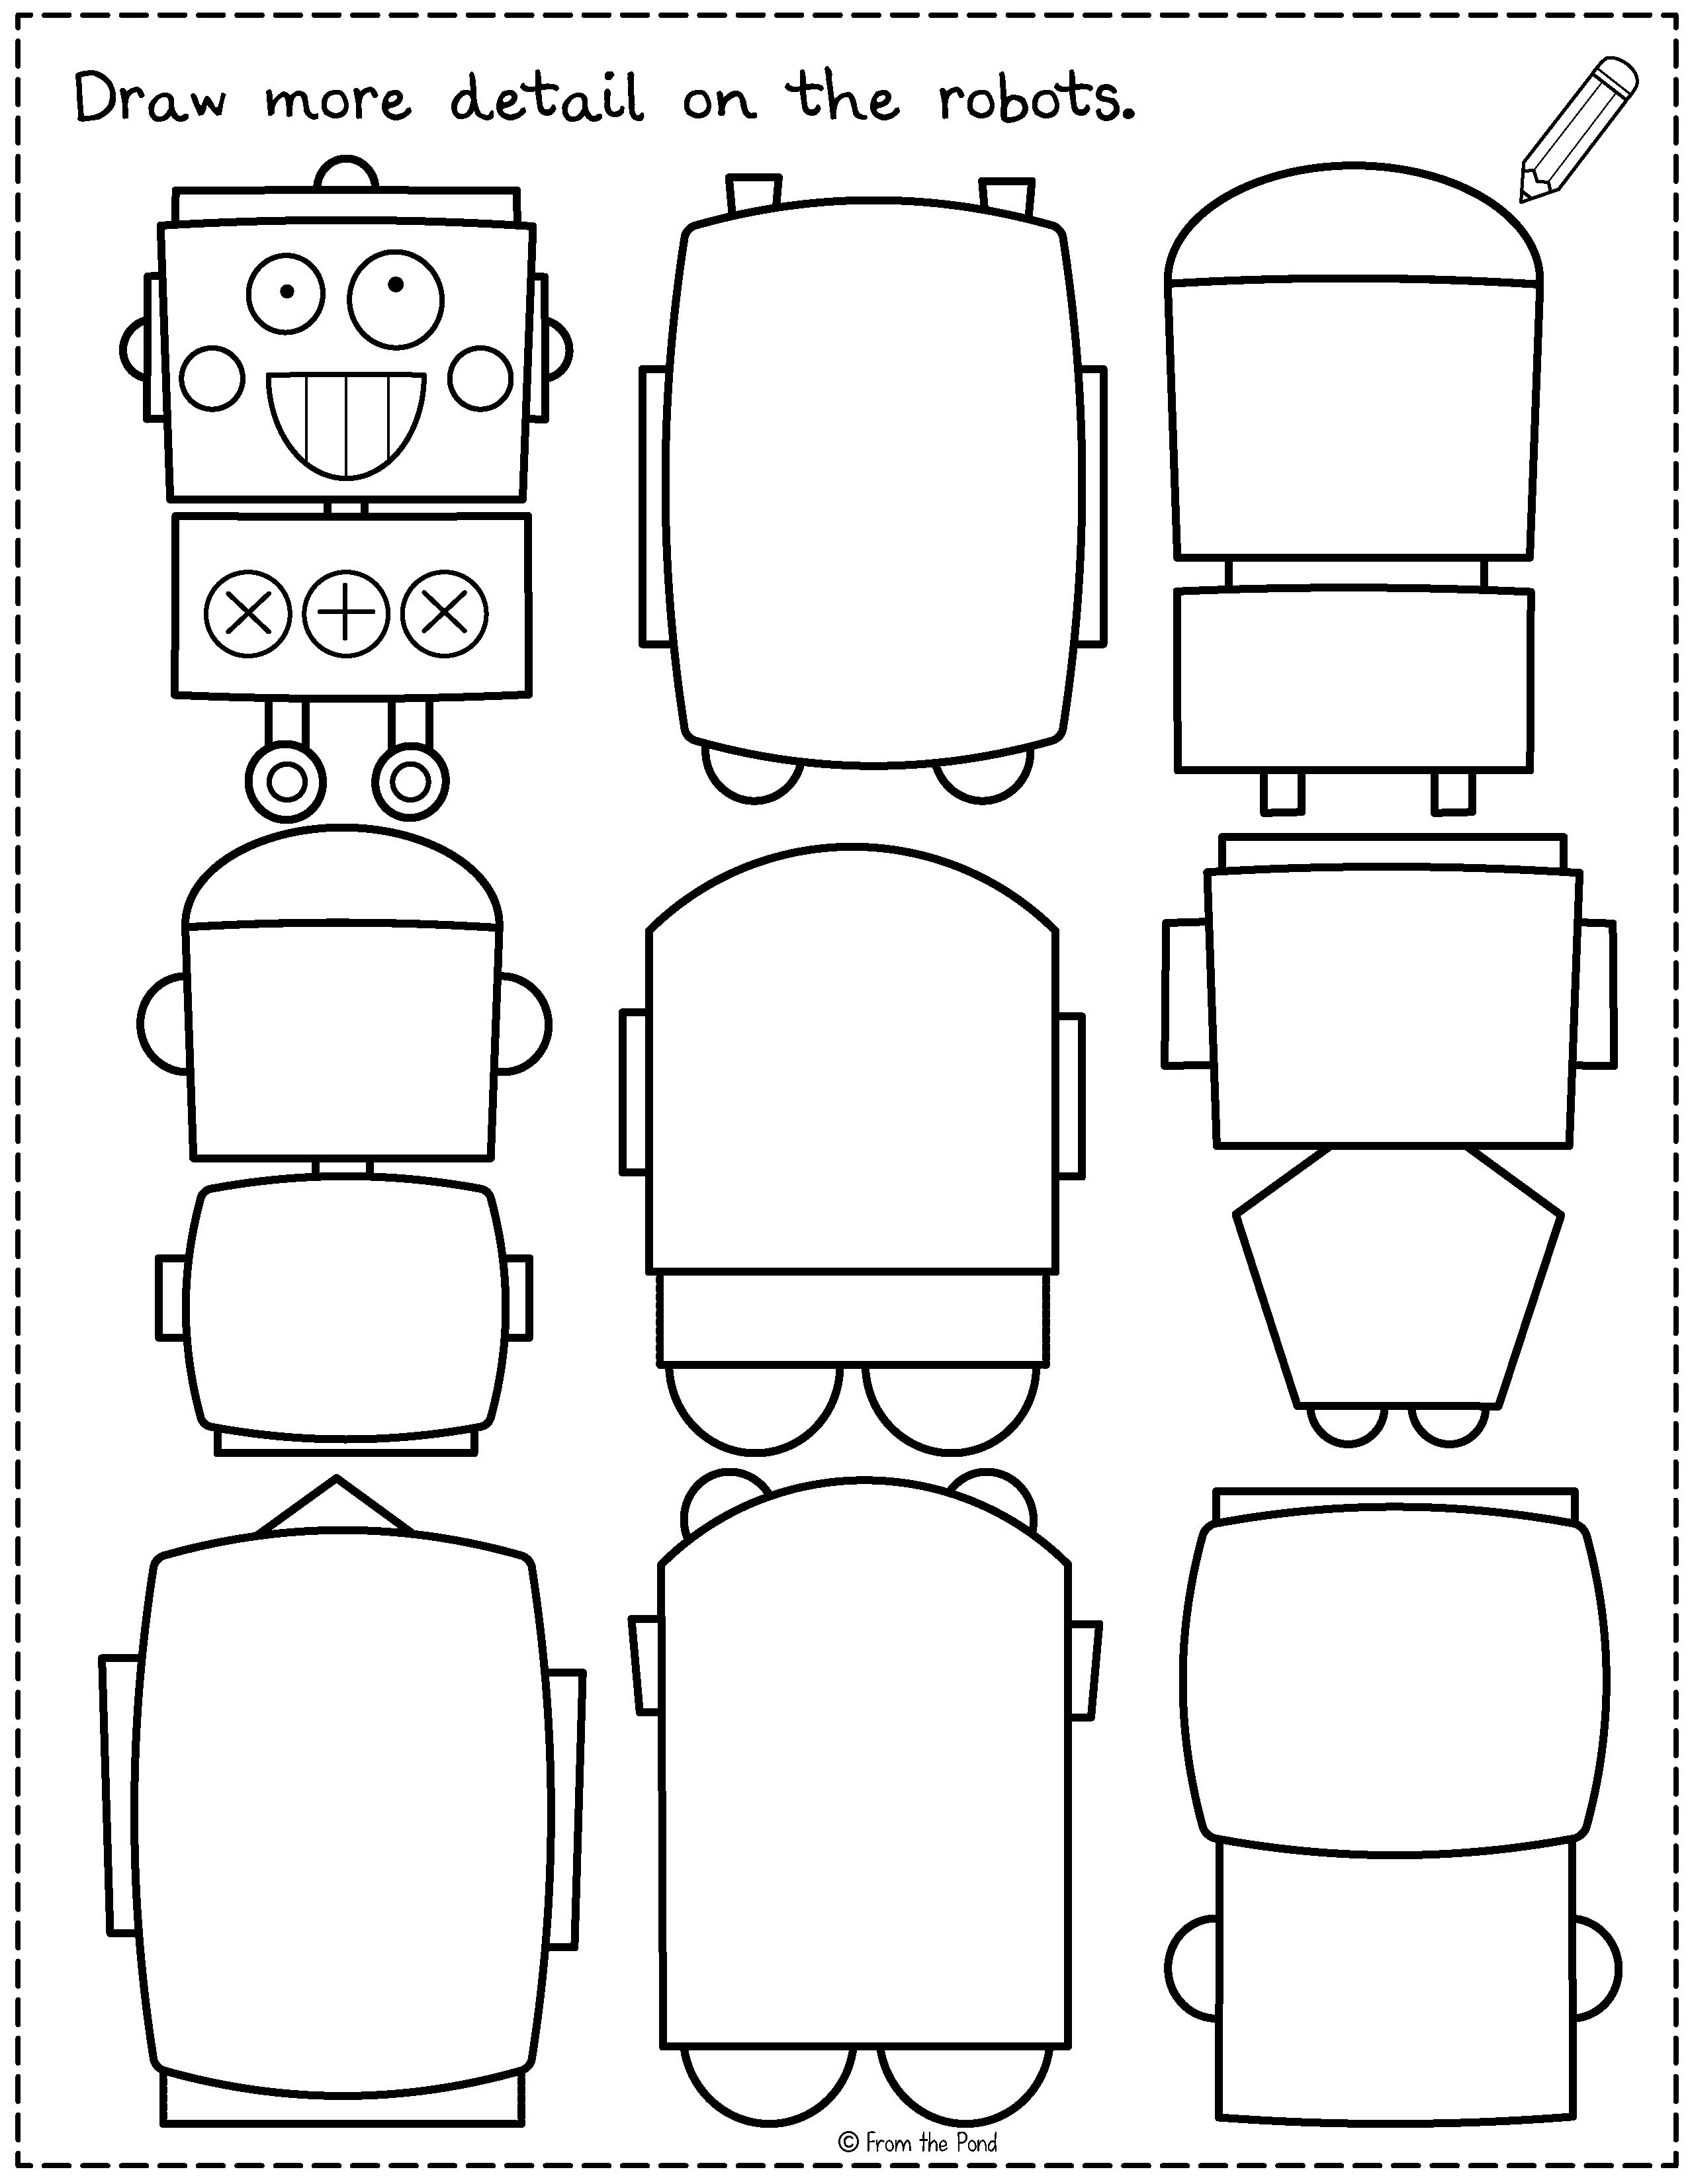 Drawing Activities Creative Thinking And Drawing Art Worksheets Creative Worksheets Drawing Activities Drawing worksheets free download